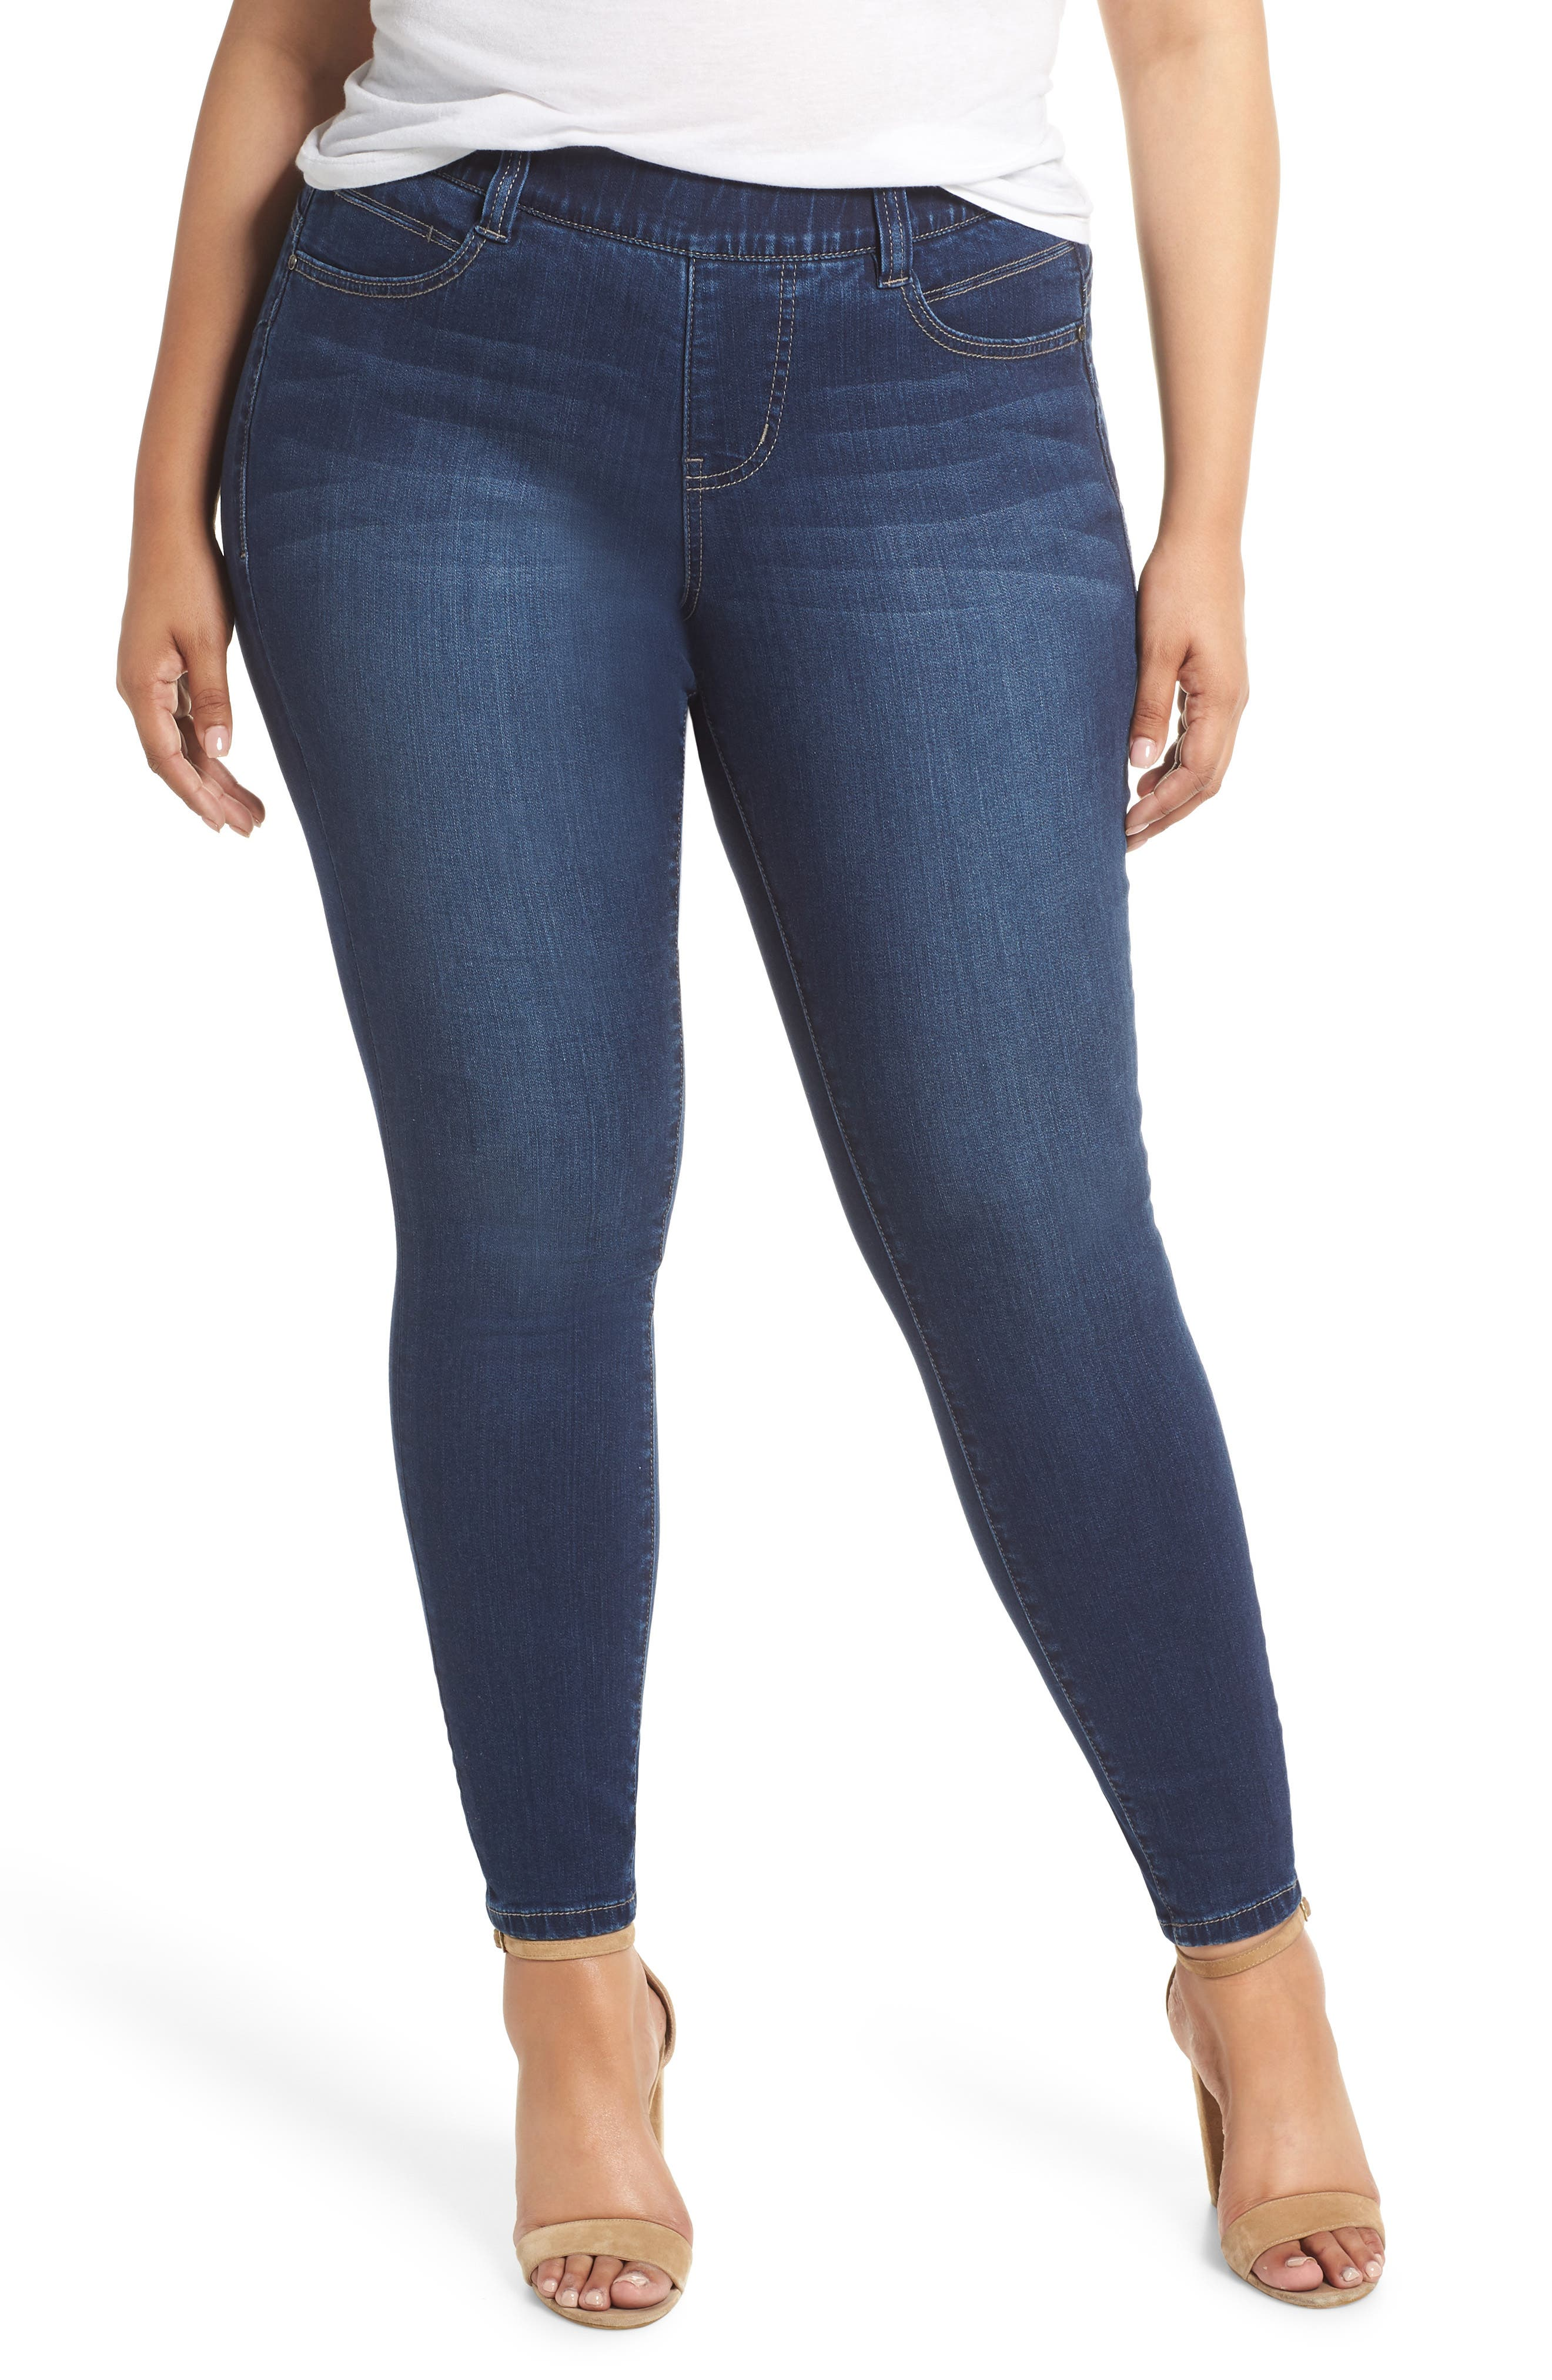 JAG JEANS Bryn Pull-On Jeans in Med Indigo